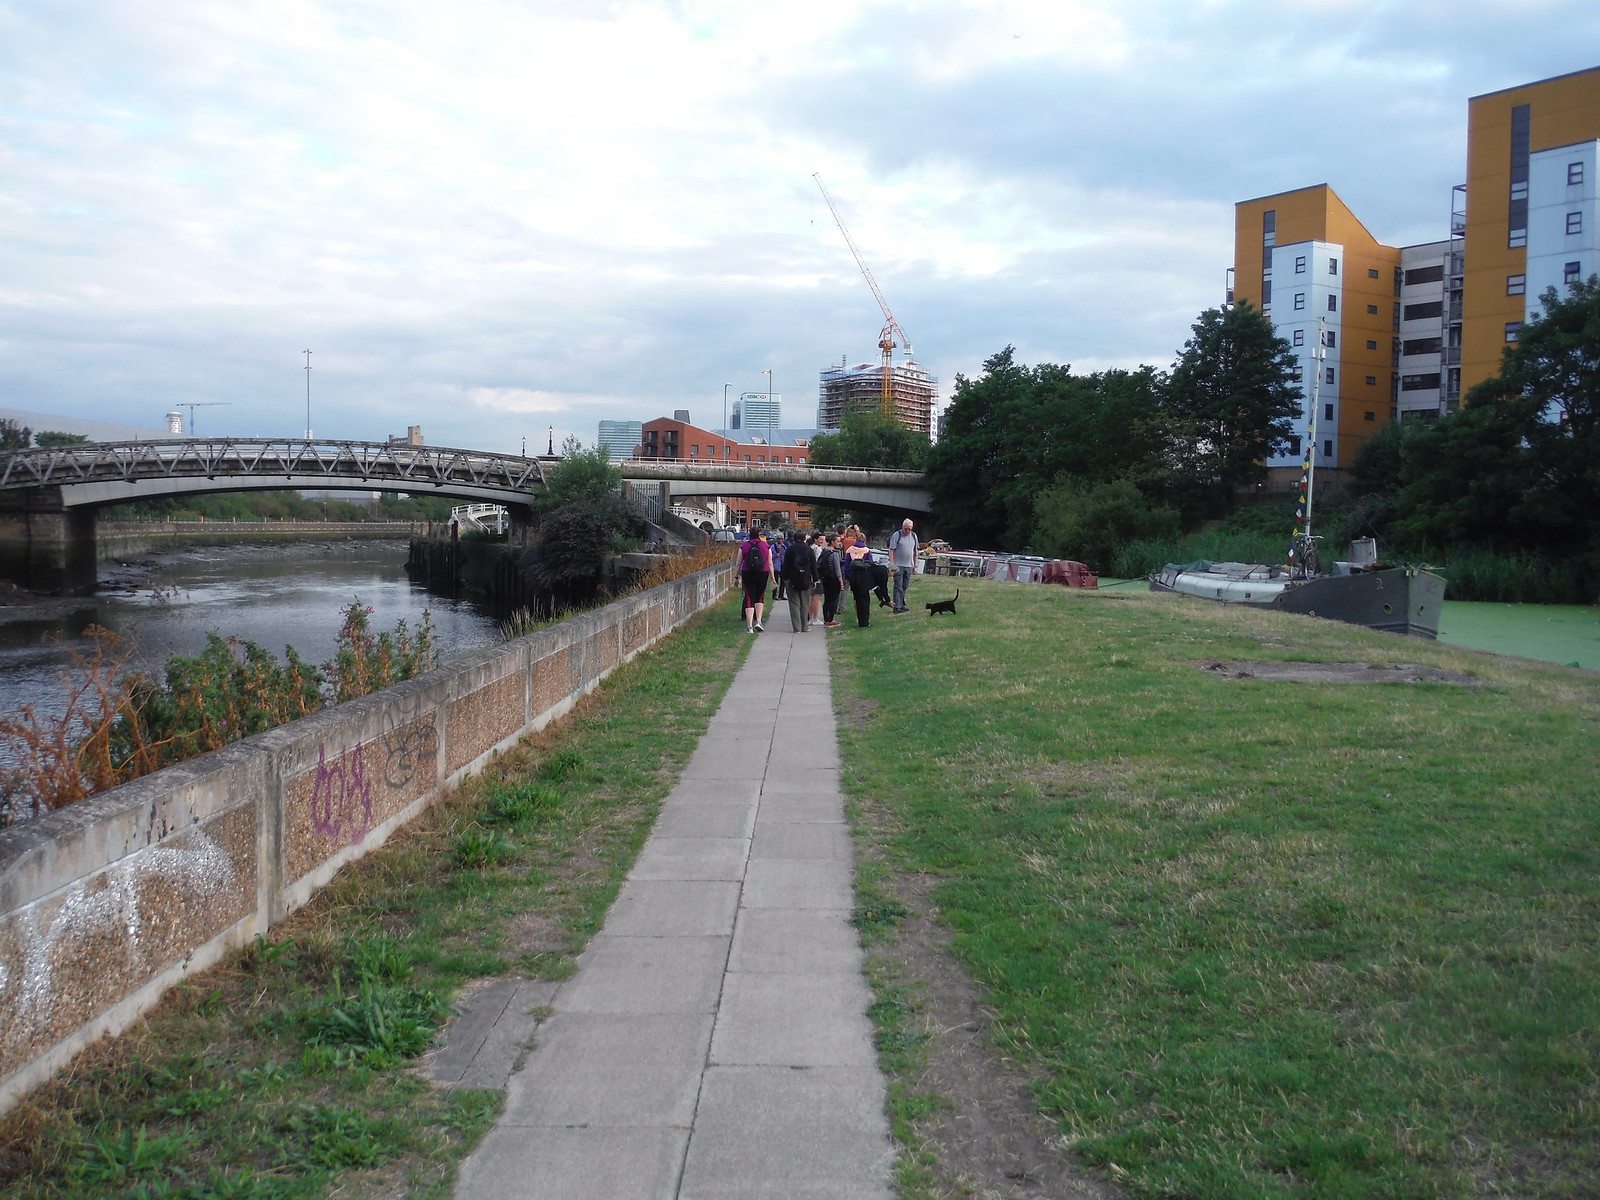 Between the rivers: Waterworks and Lea SWC Short Walk 21 - The Line Modern Art Walk (Stratford to North Greenwich)